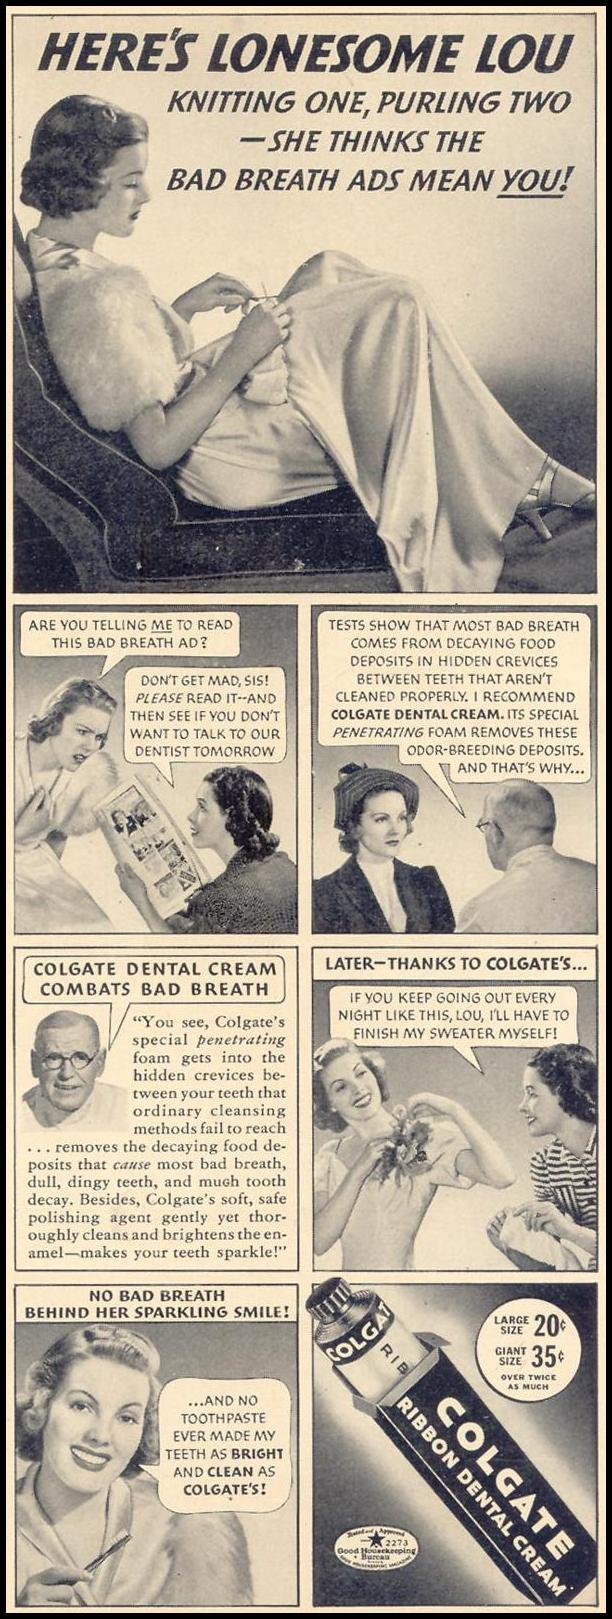 COLGATE DENTAL CREAM LIFE 10/17/1938 p. 7